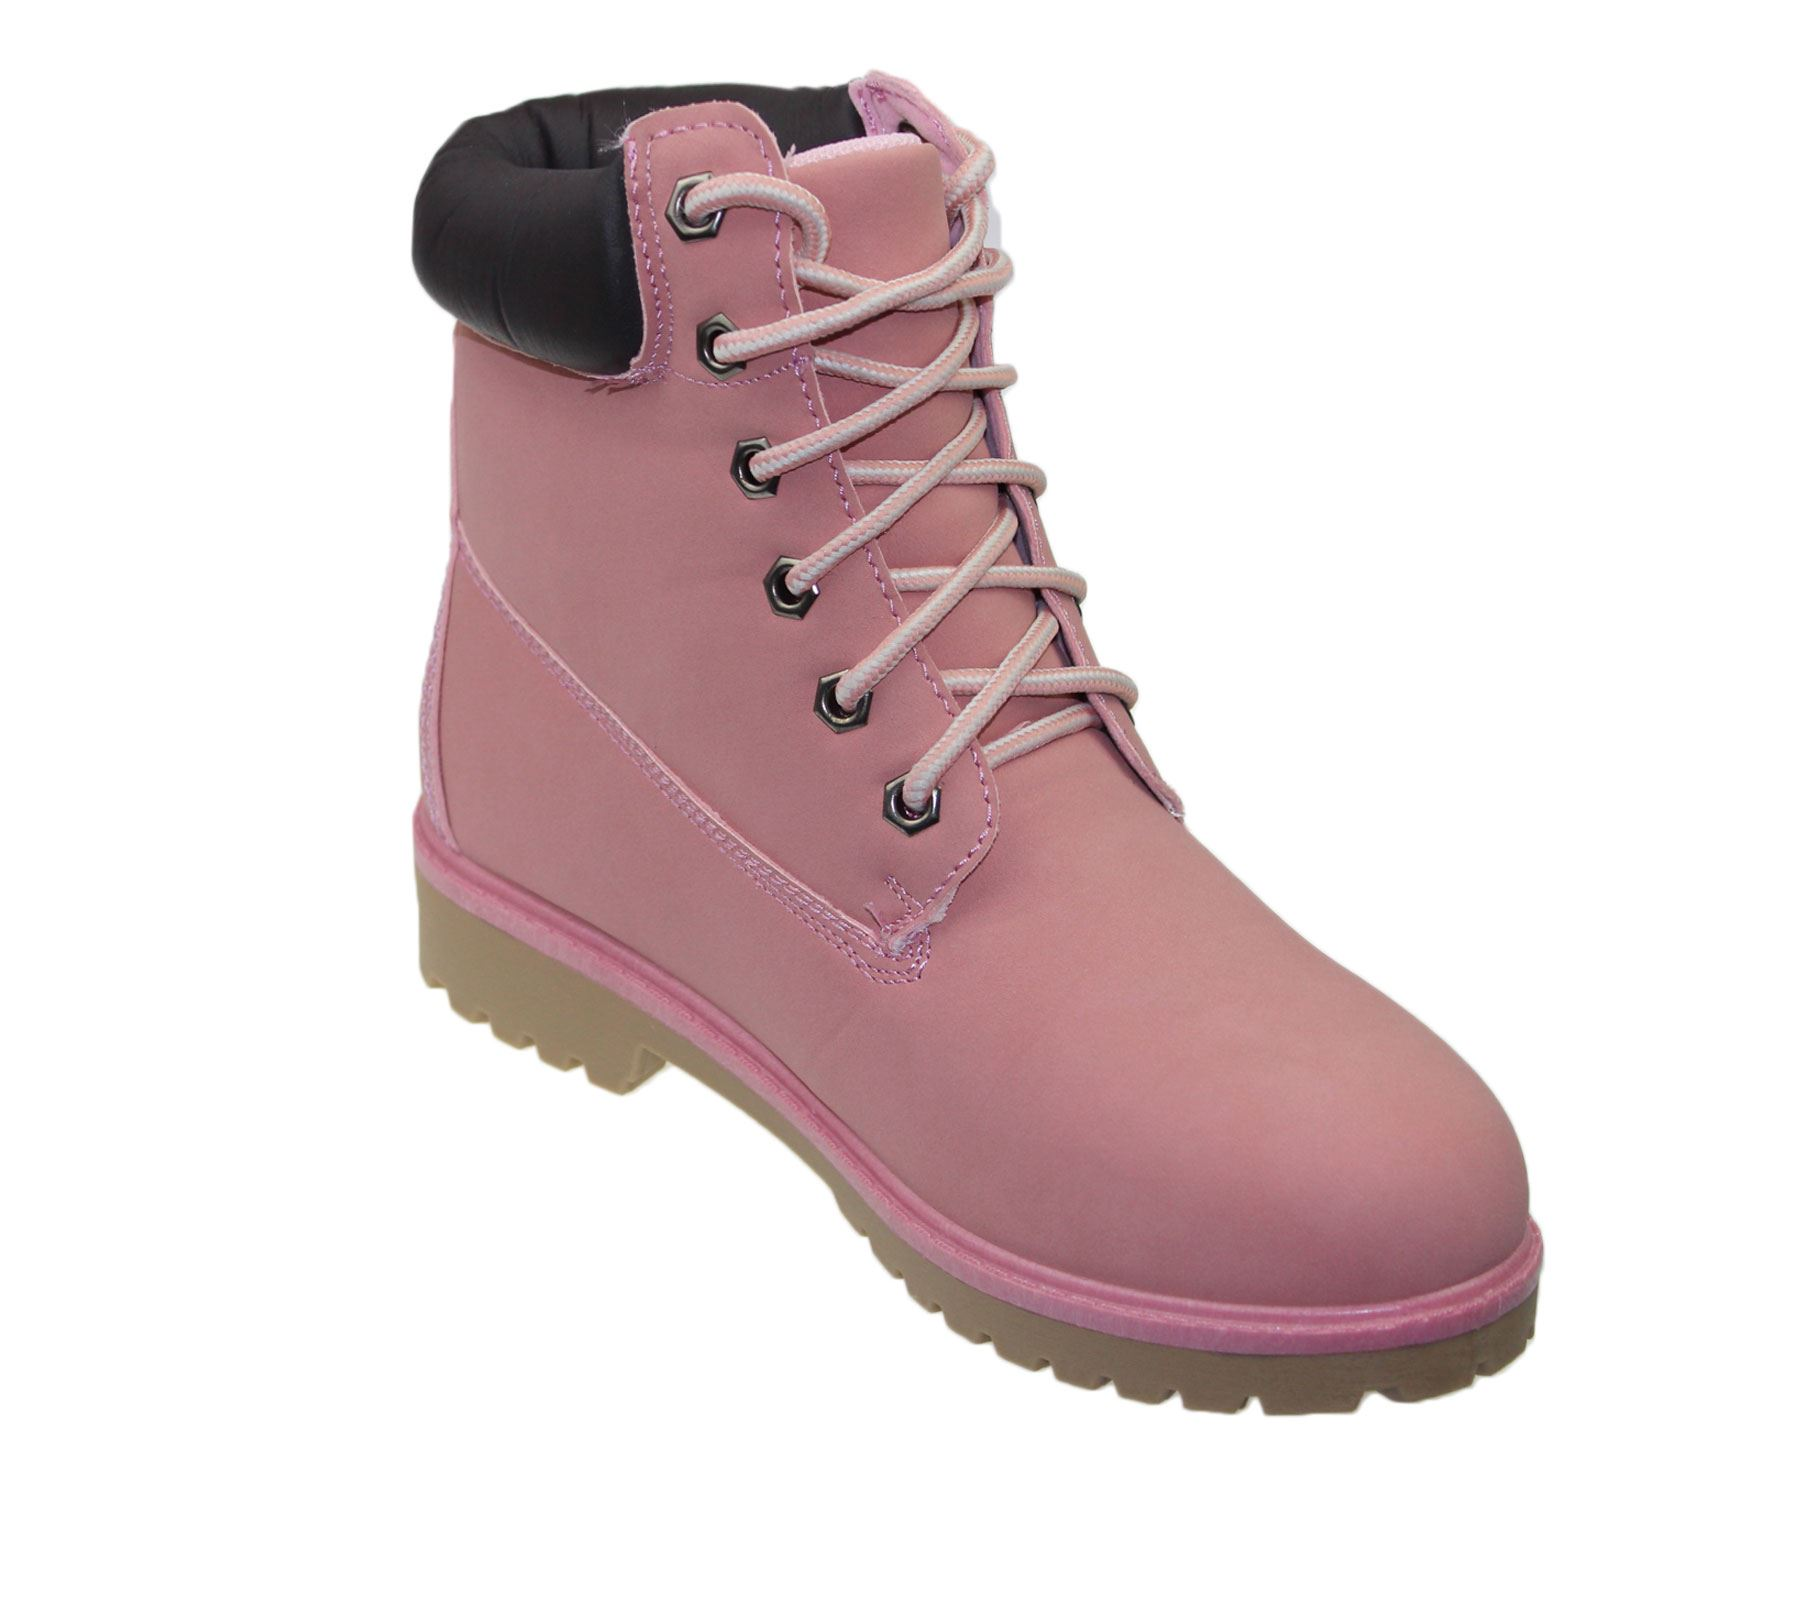 Womens High Top Boots Hiking Desert Trail Combat Ladies Ankle Work Lace Up Shoes